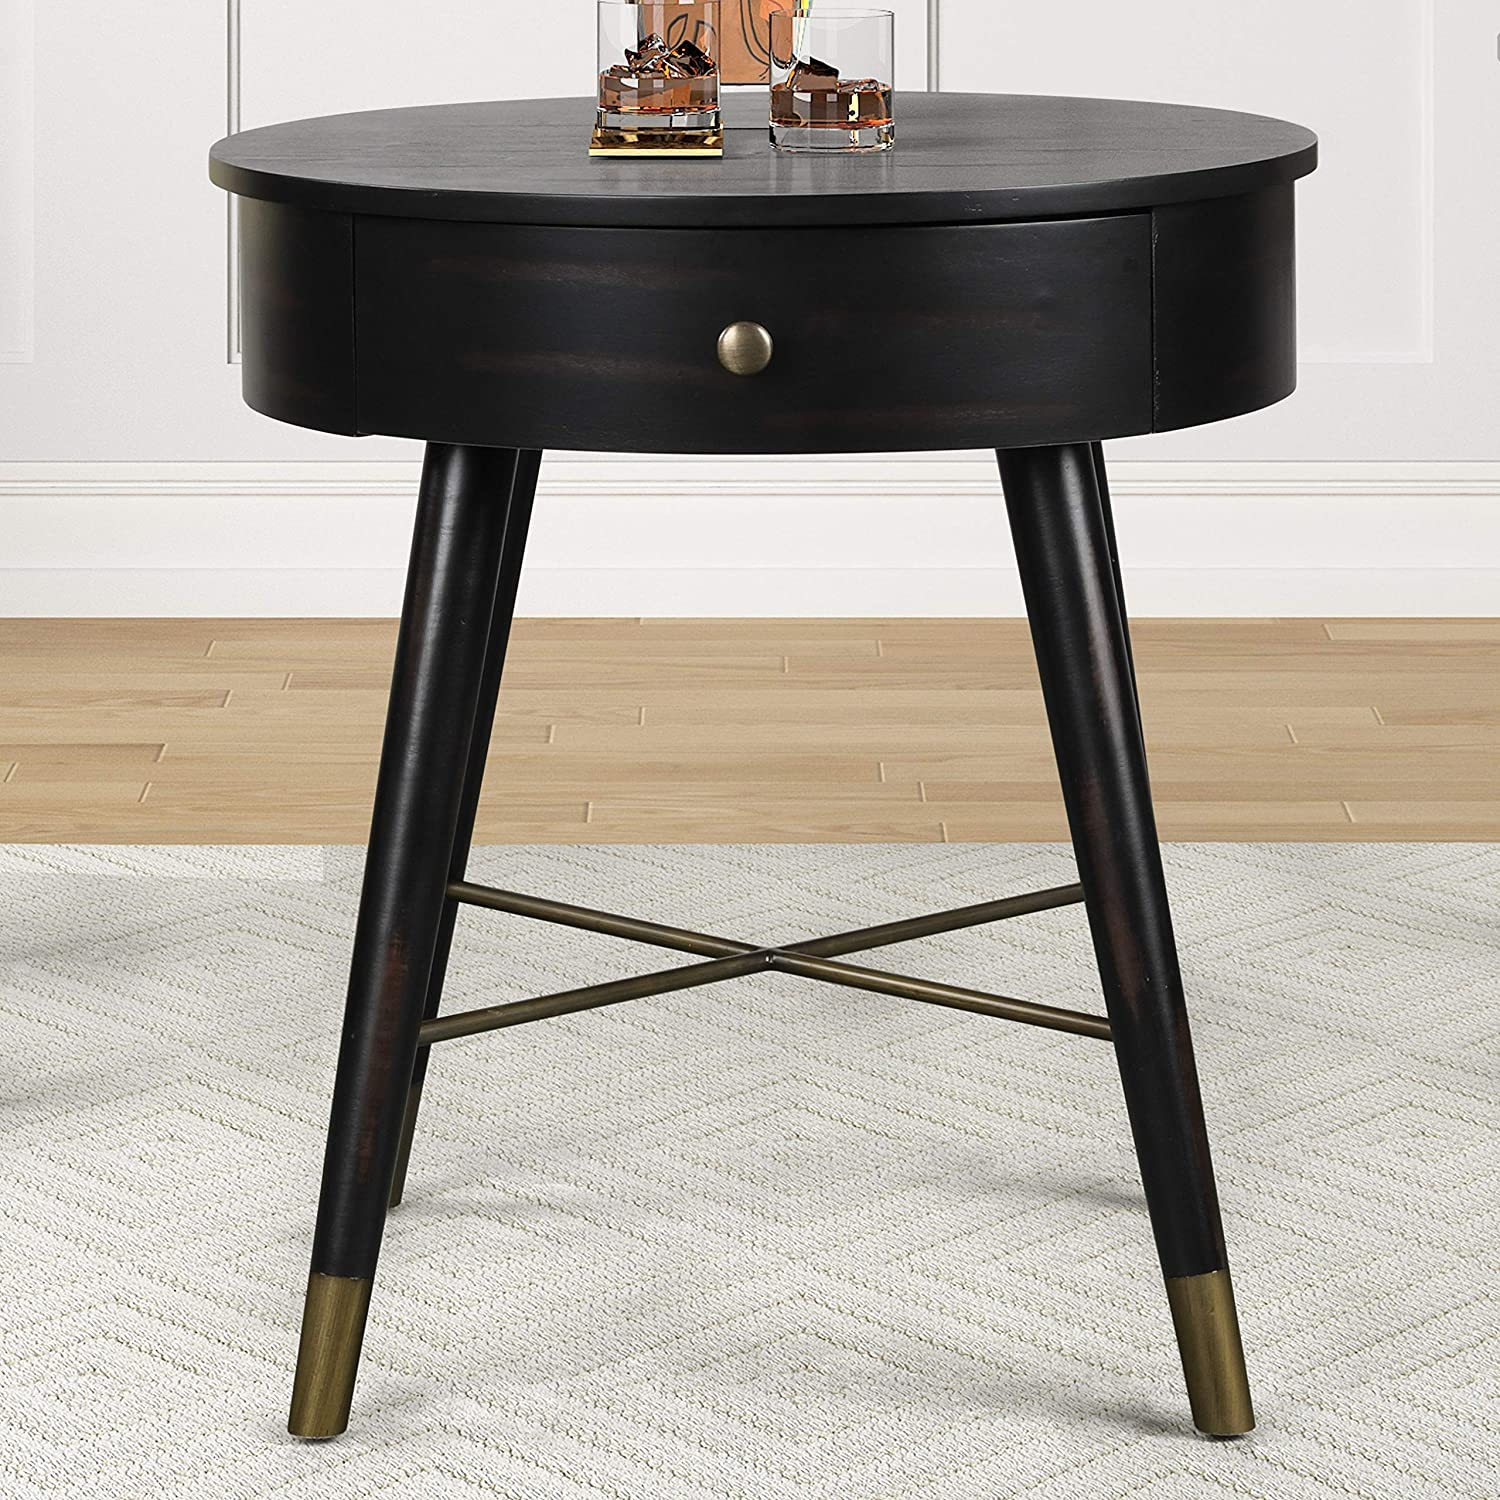 Roundhill Furniture Velsen Mid-Century Modern Wood and Metal End Table with Drawer, Antique Black